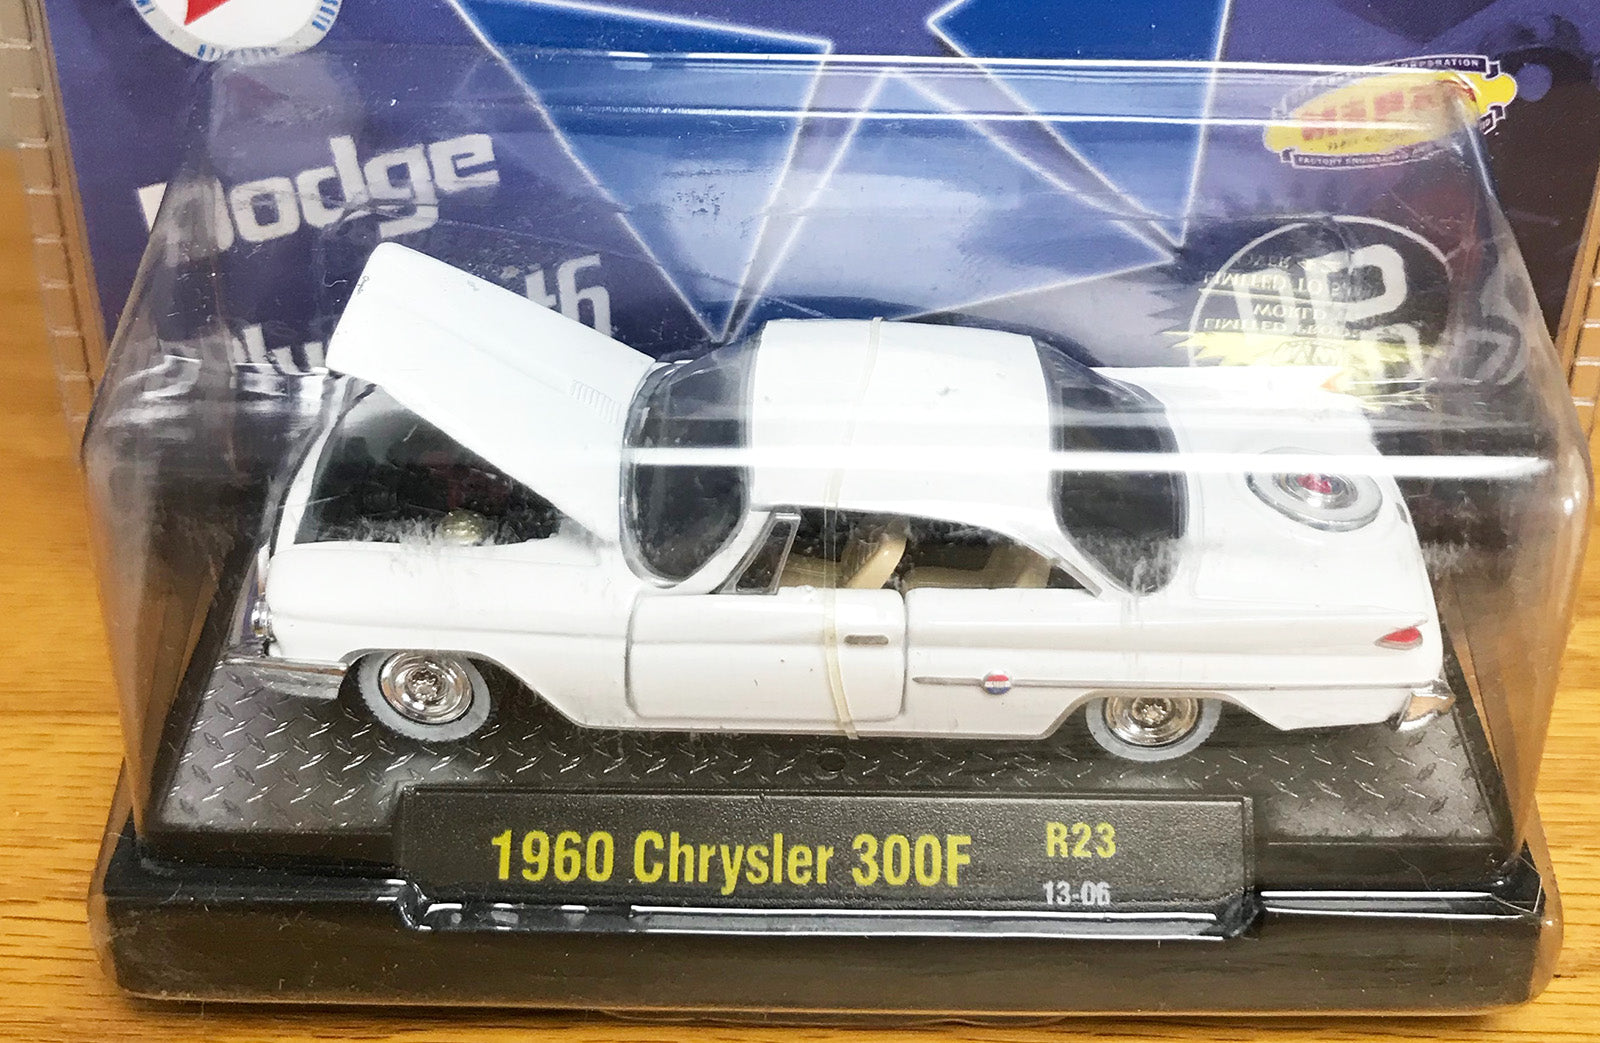 S 1960 Chrysler 300F - White